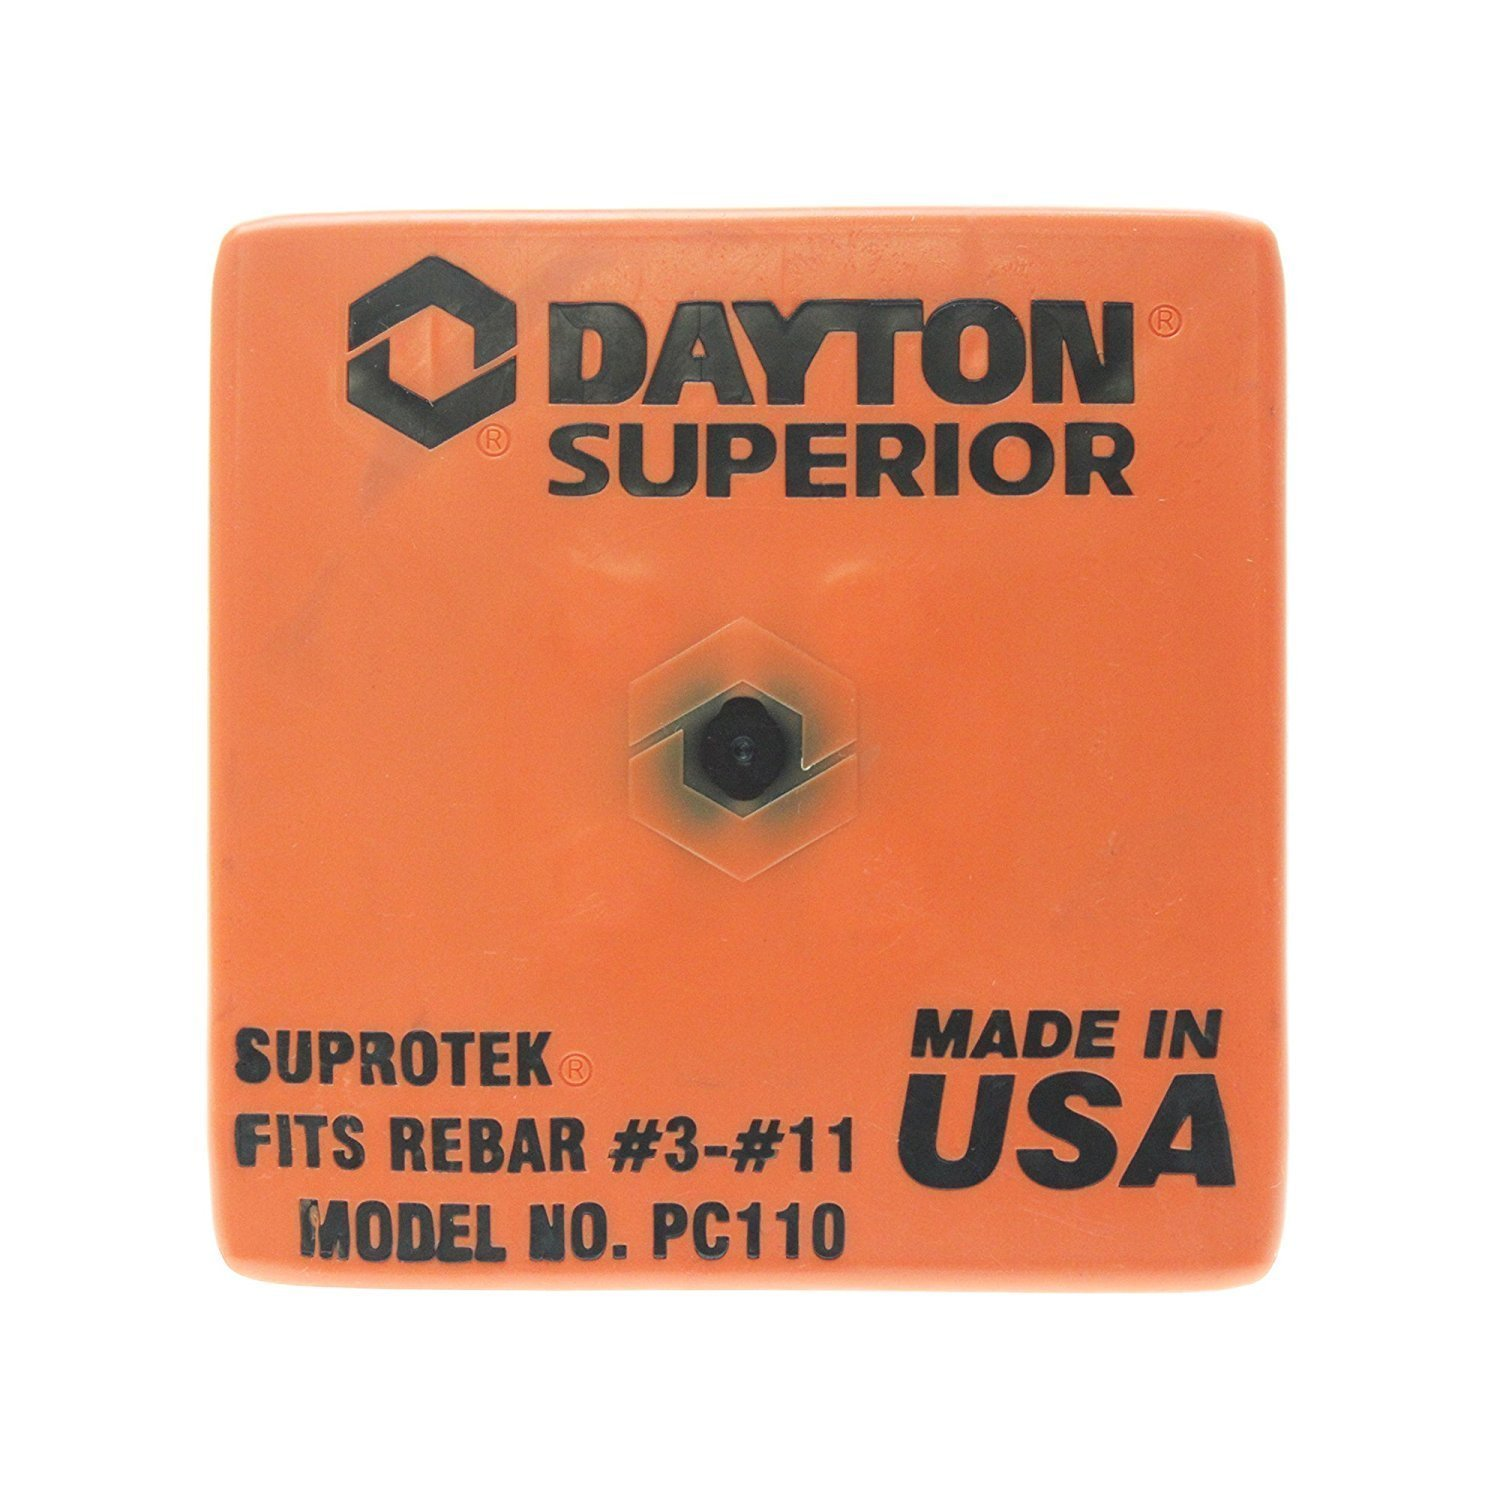 Dayton Superior OSHA Rebar Caps Fits #3- #11 Rebar Sizes QTY 100